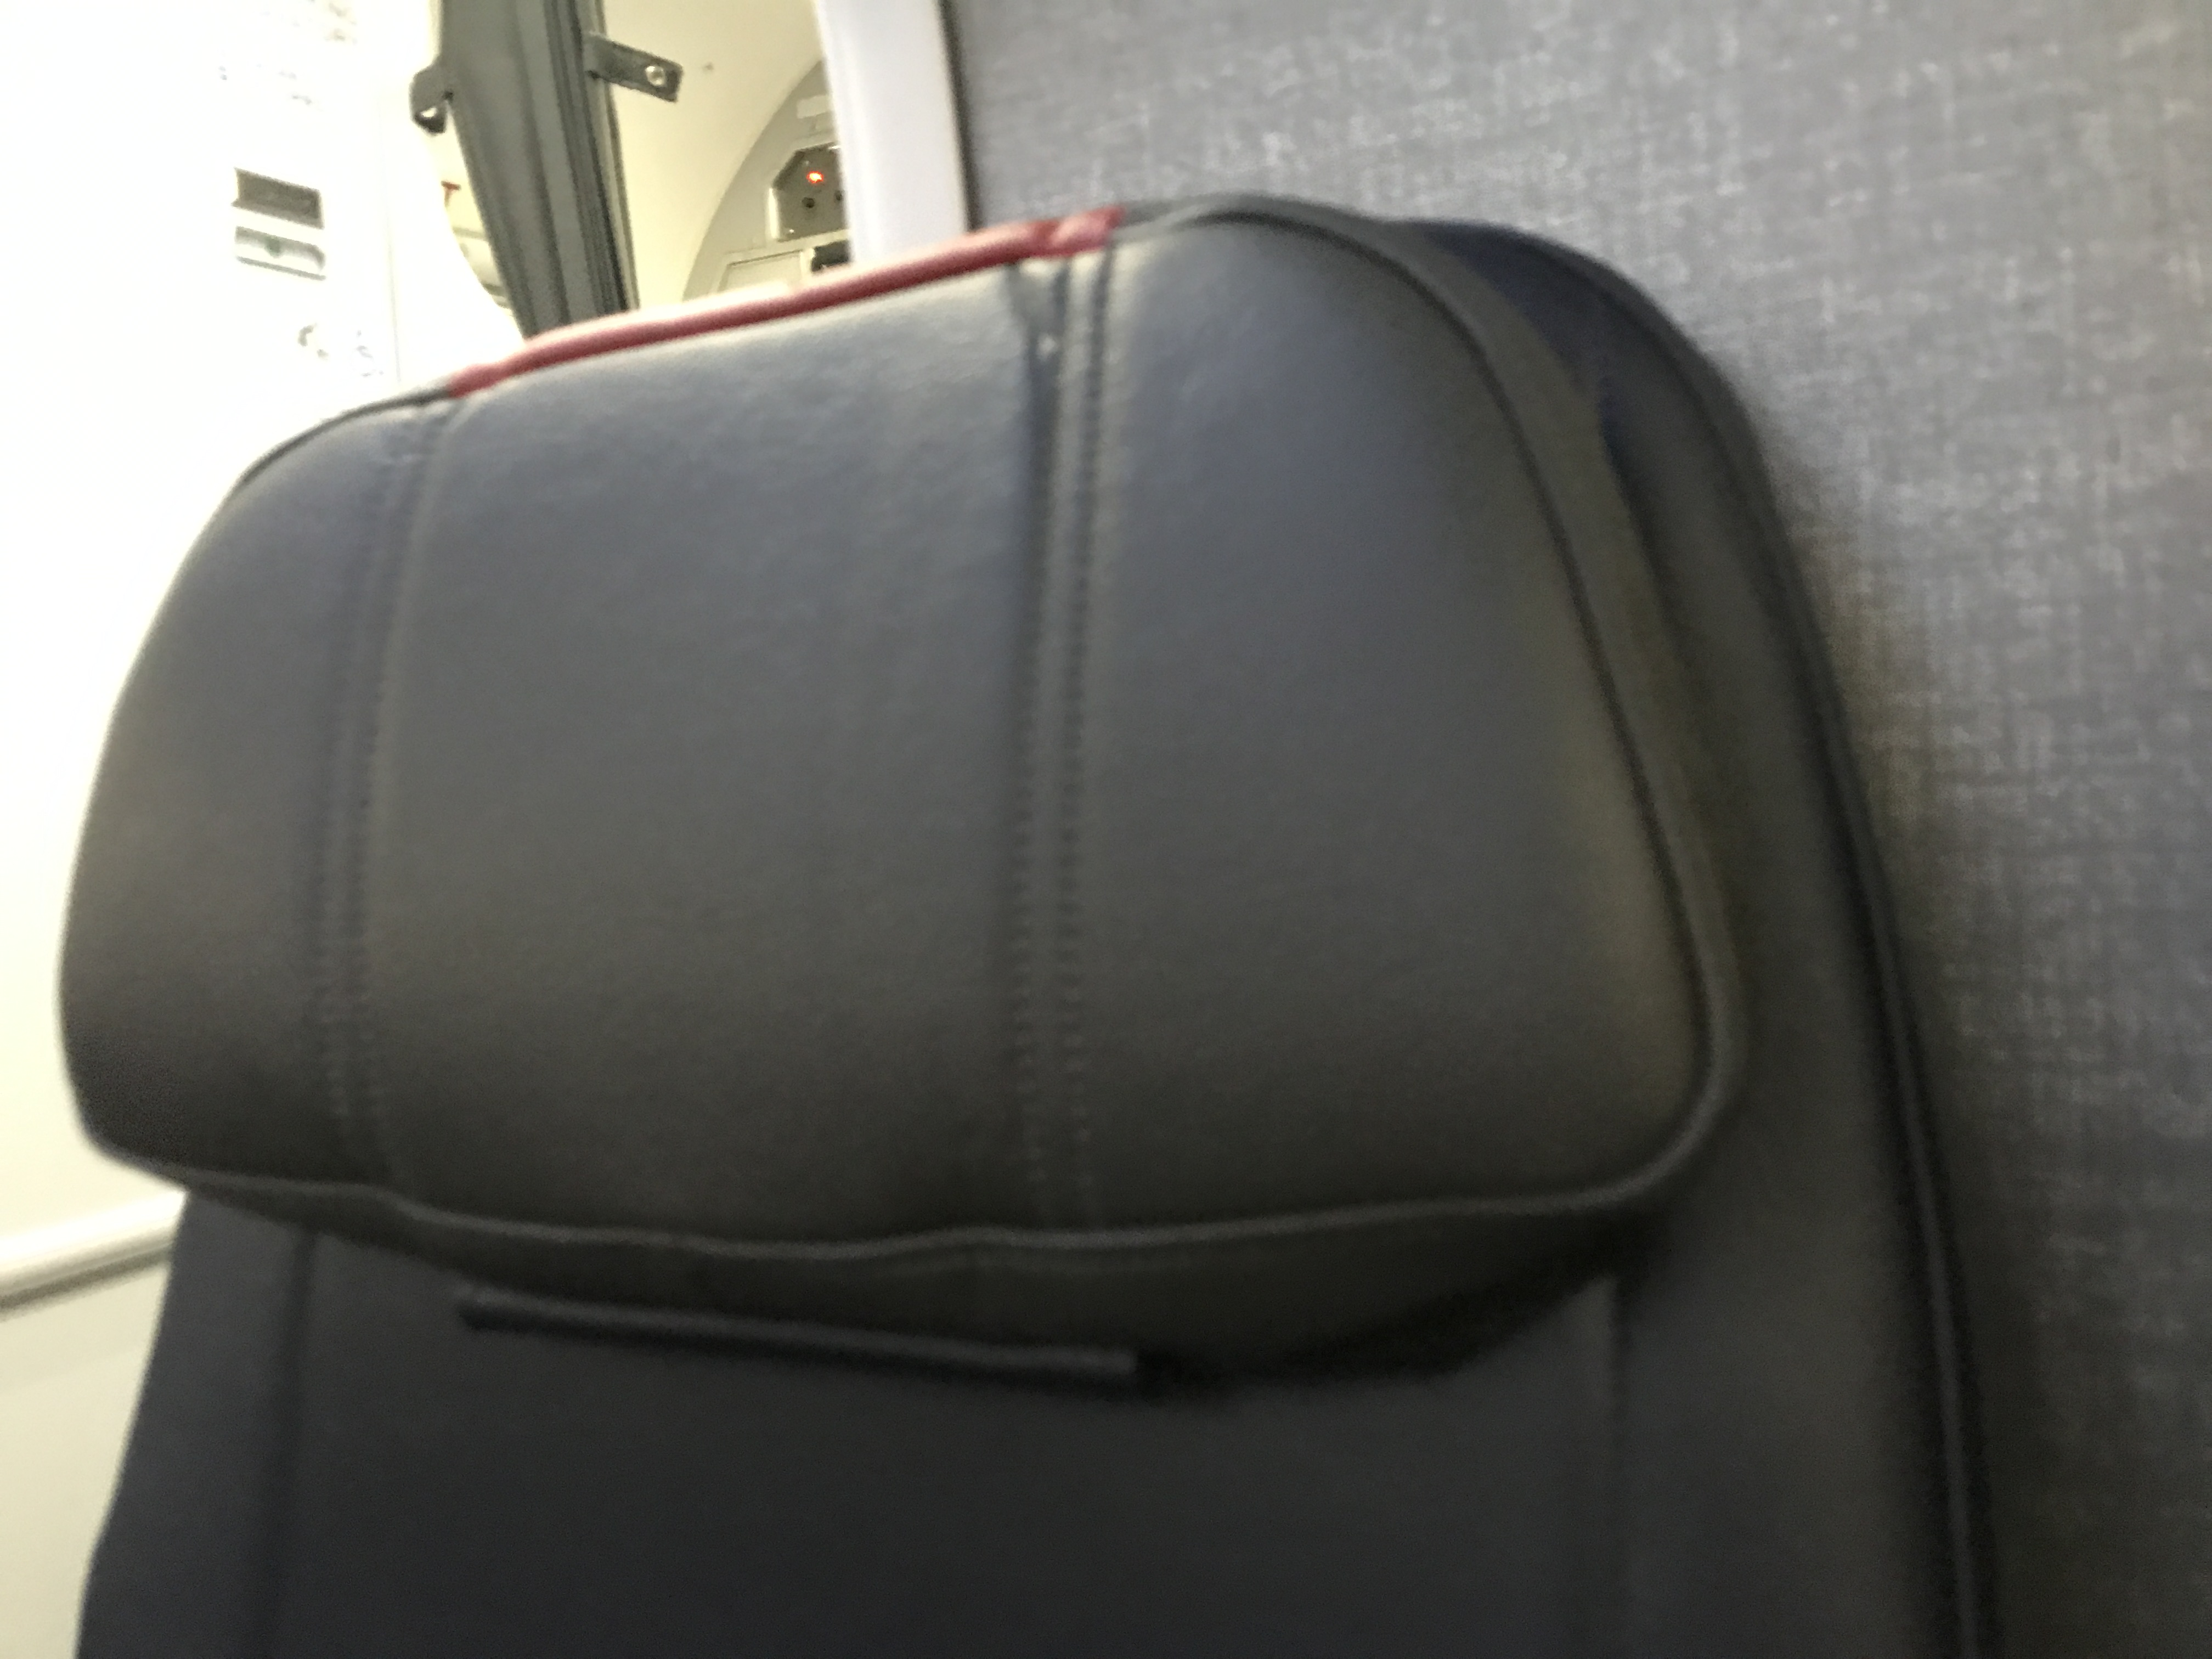 Headrests that actually support your head. Groundbreaking. Image by Chris Dong